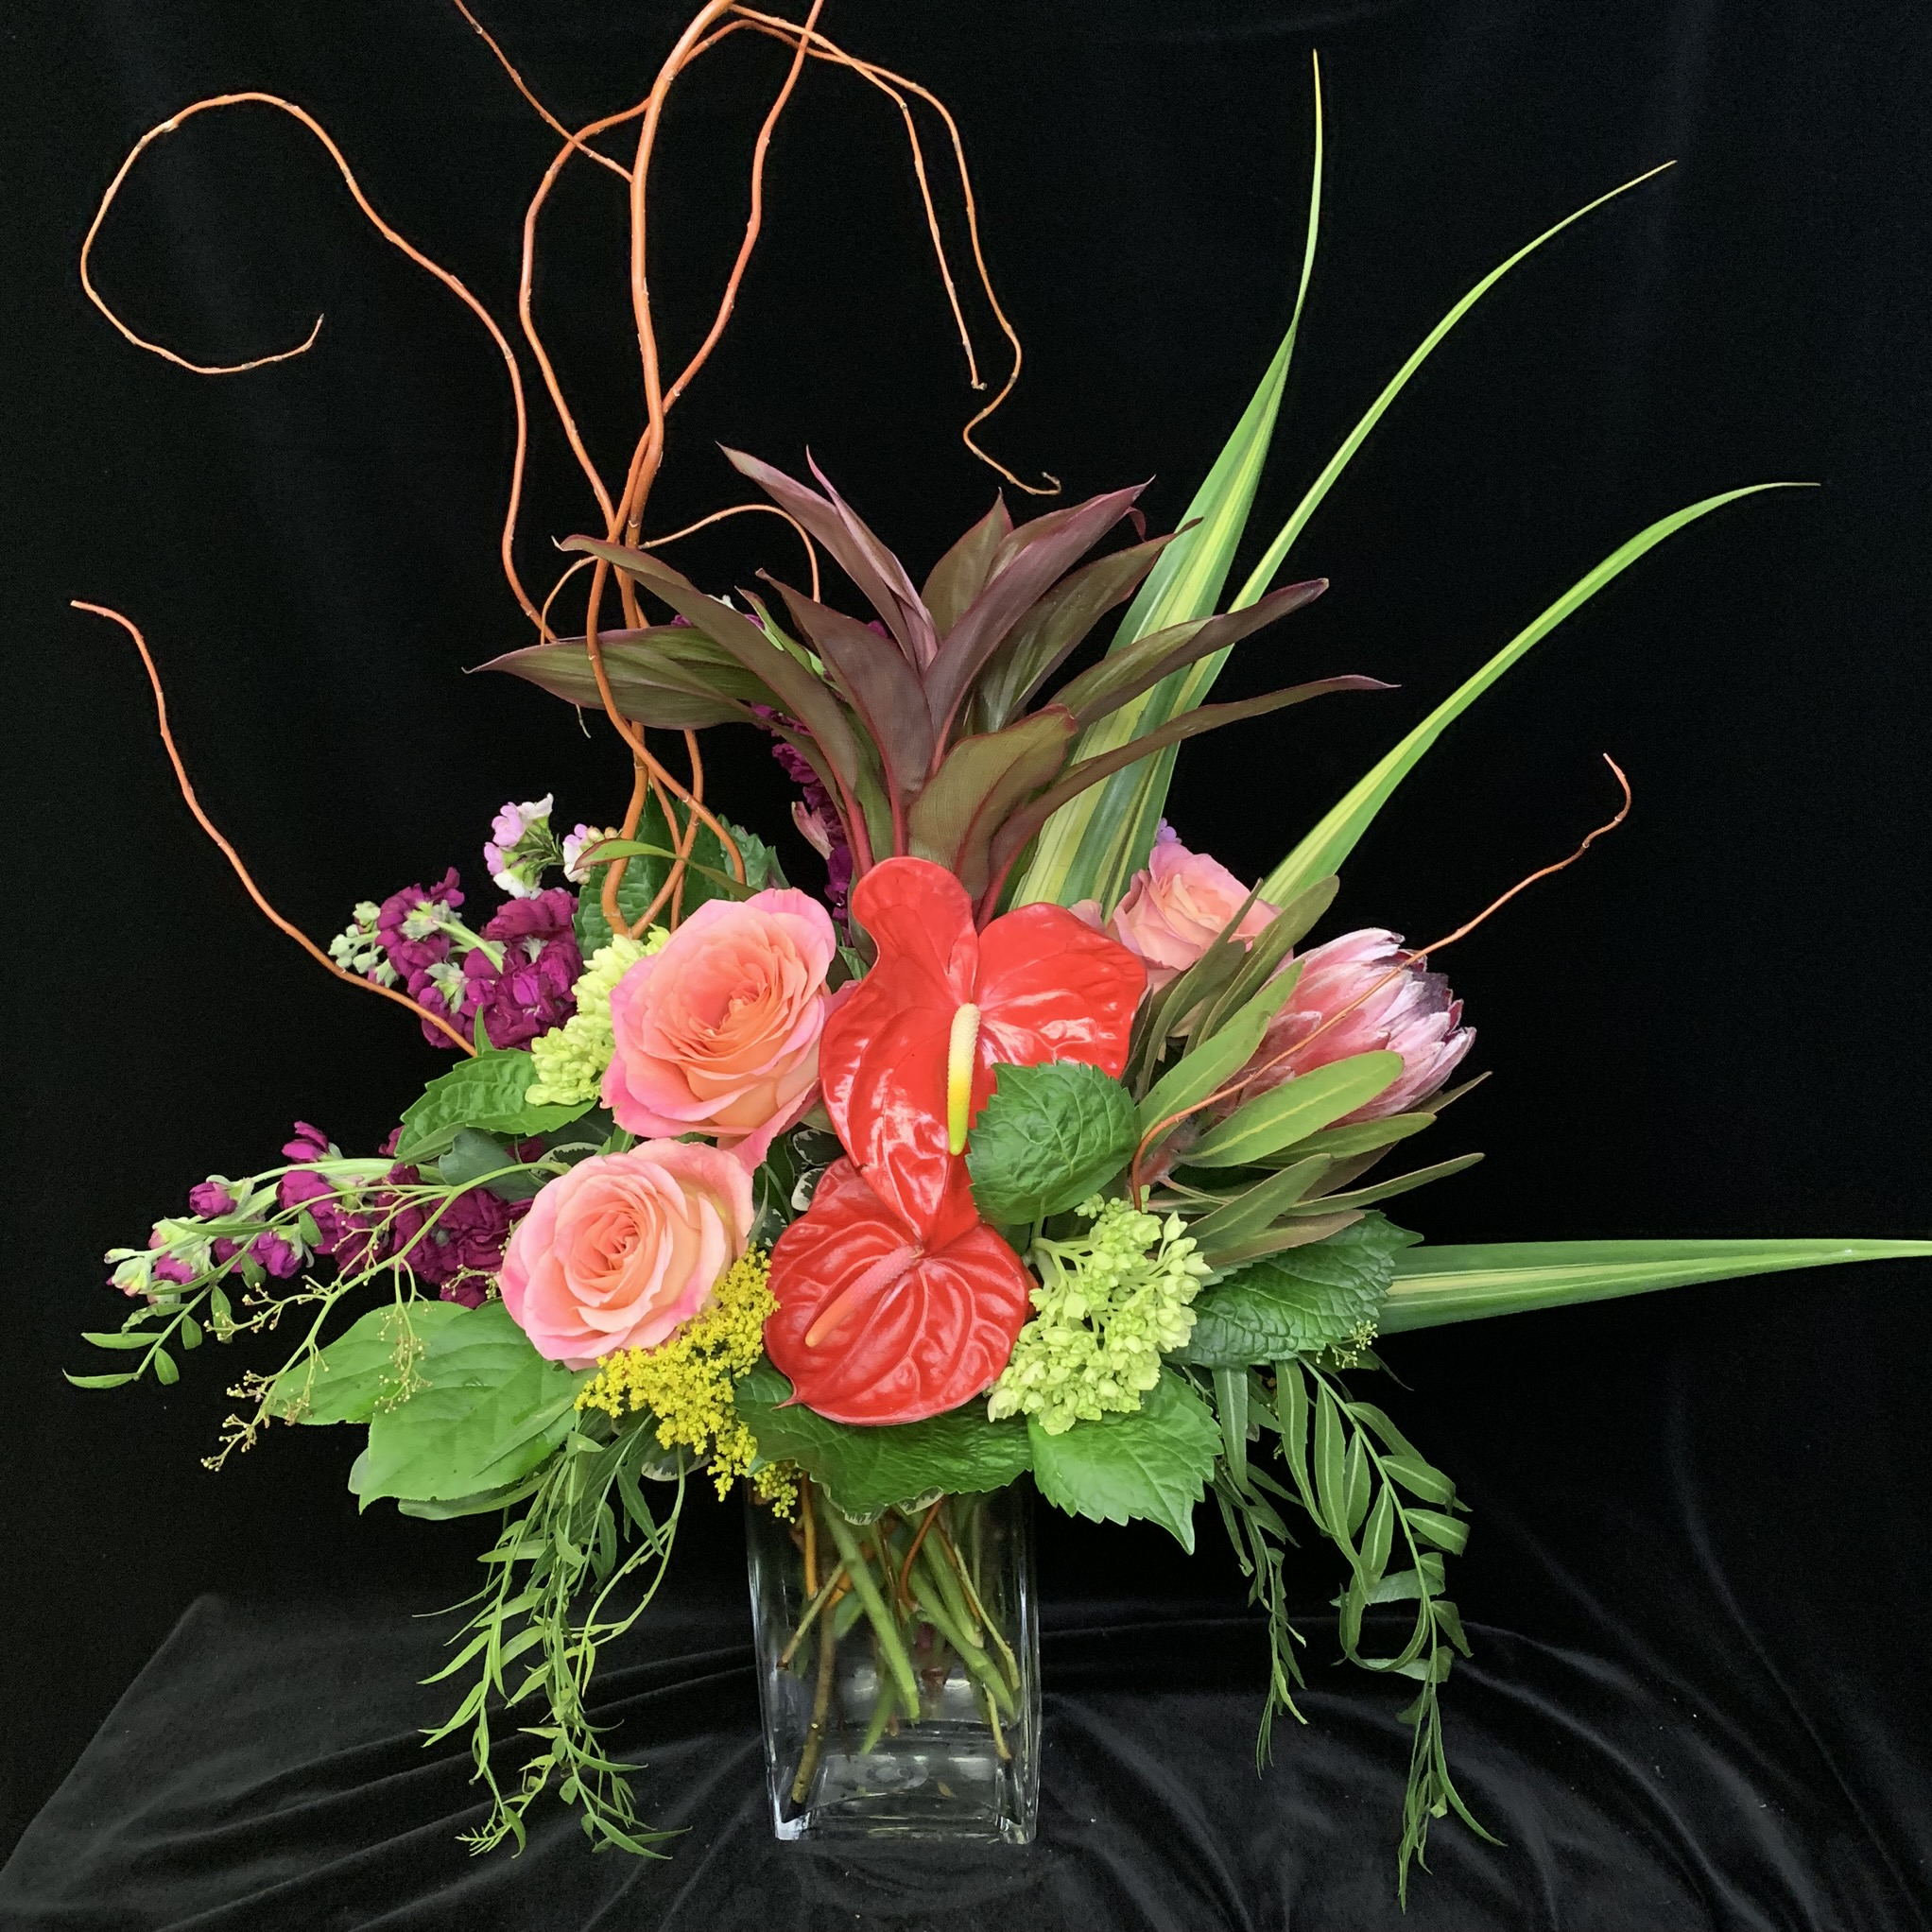 32. Dramatic coral and peach display